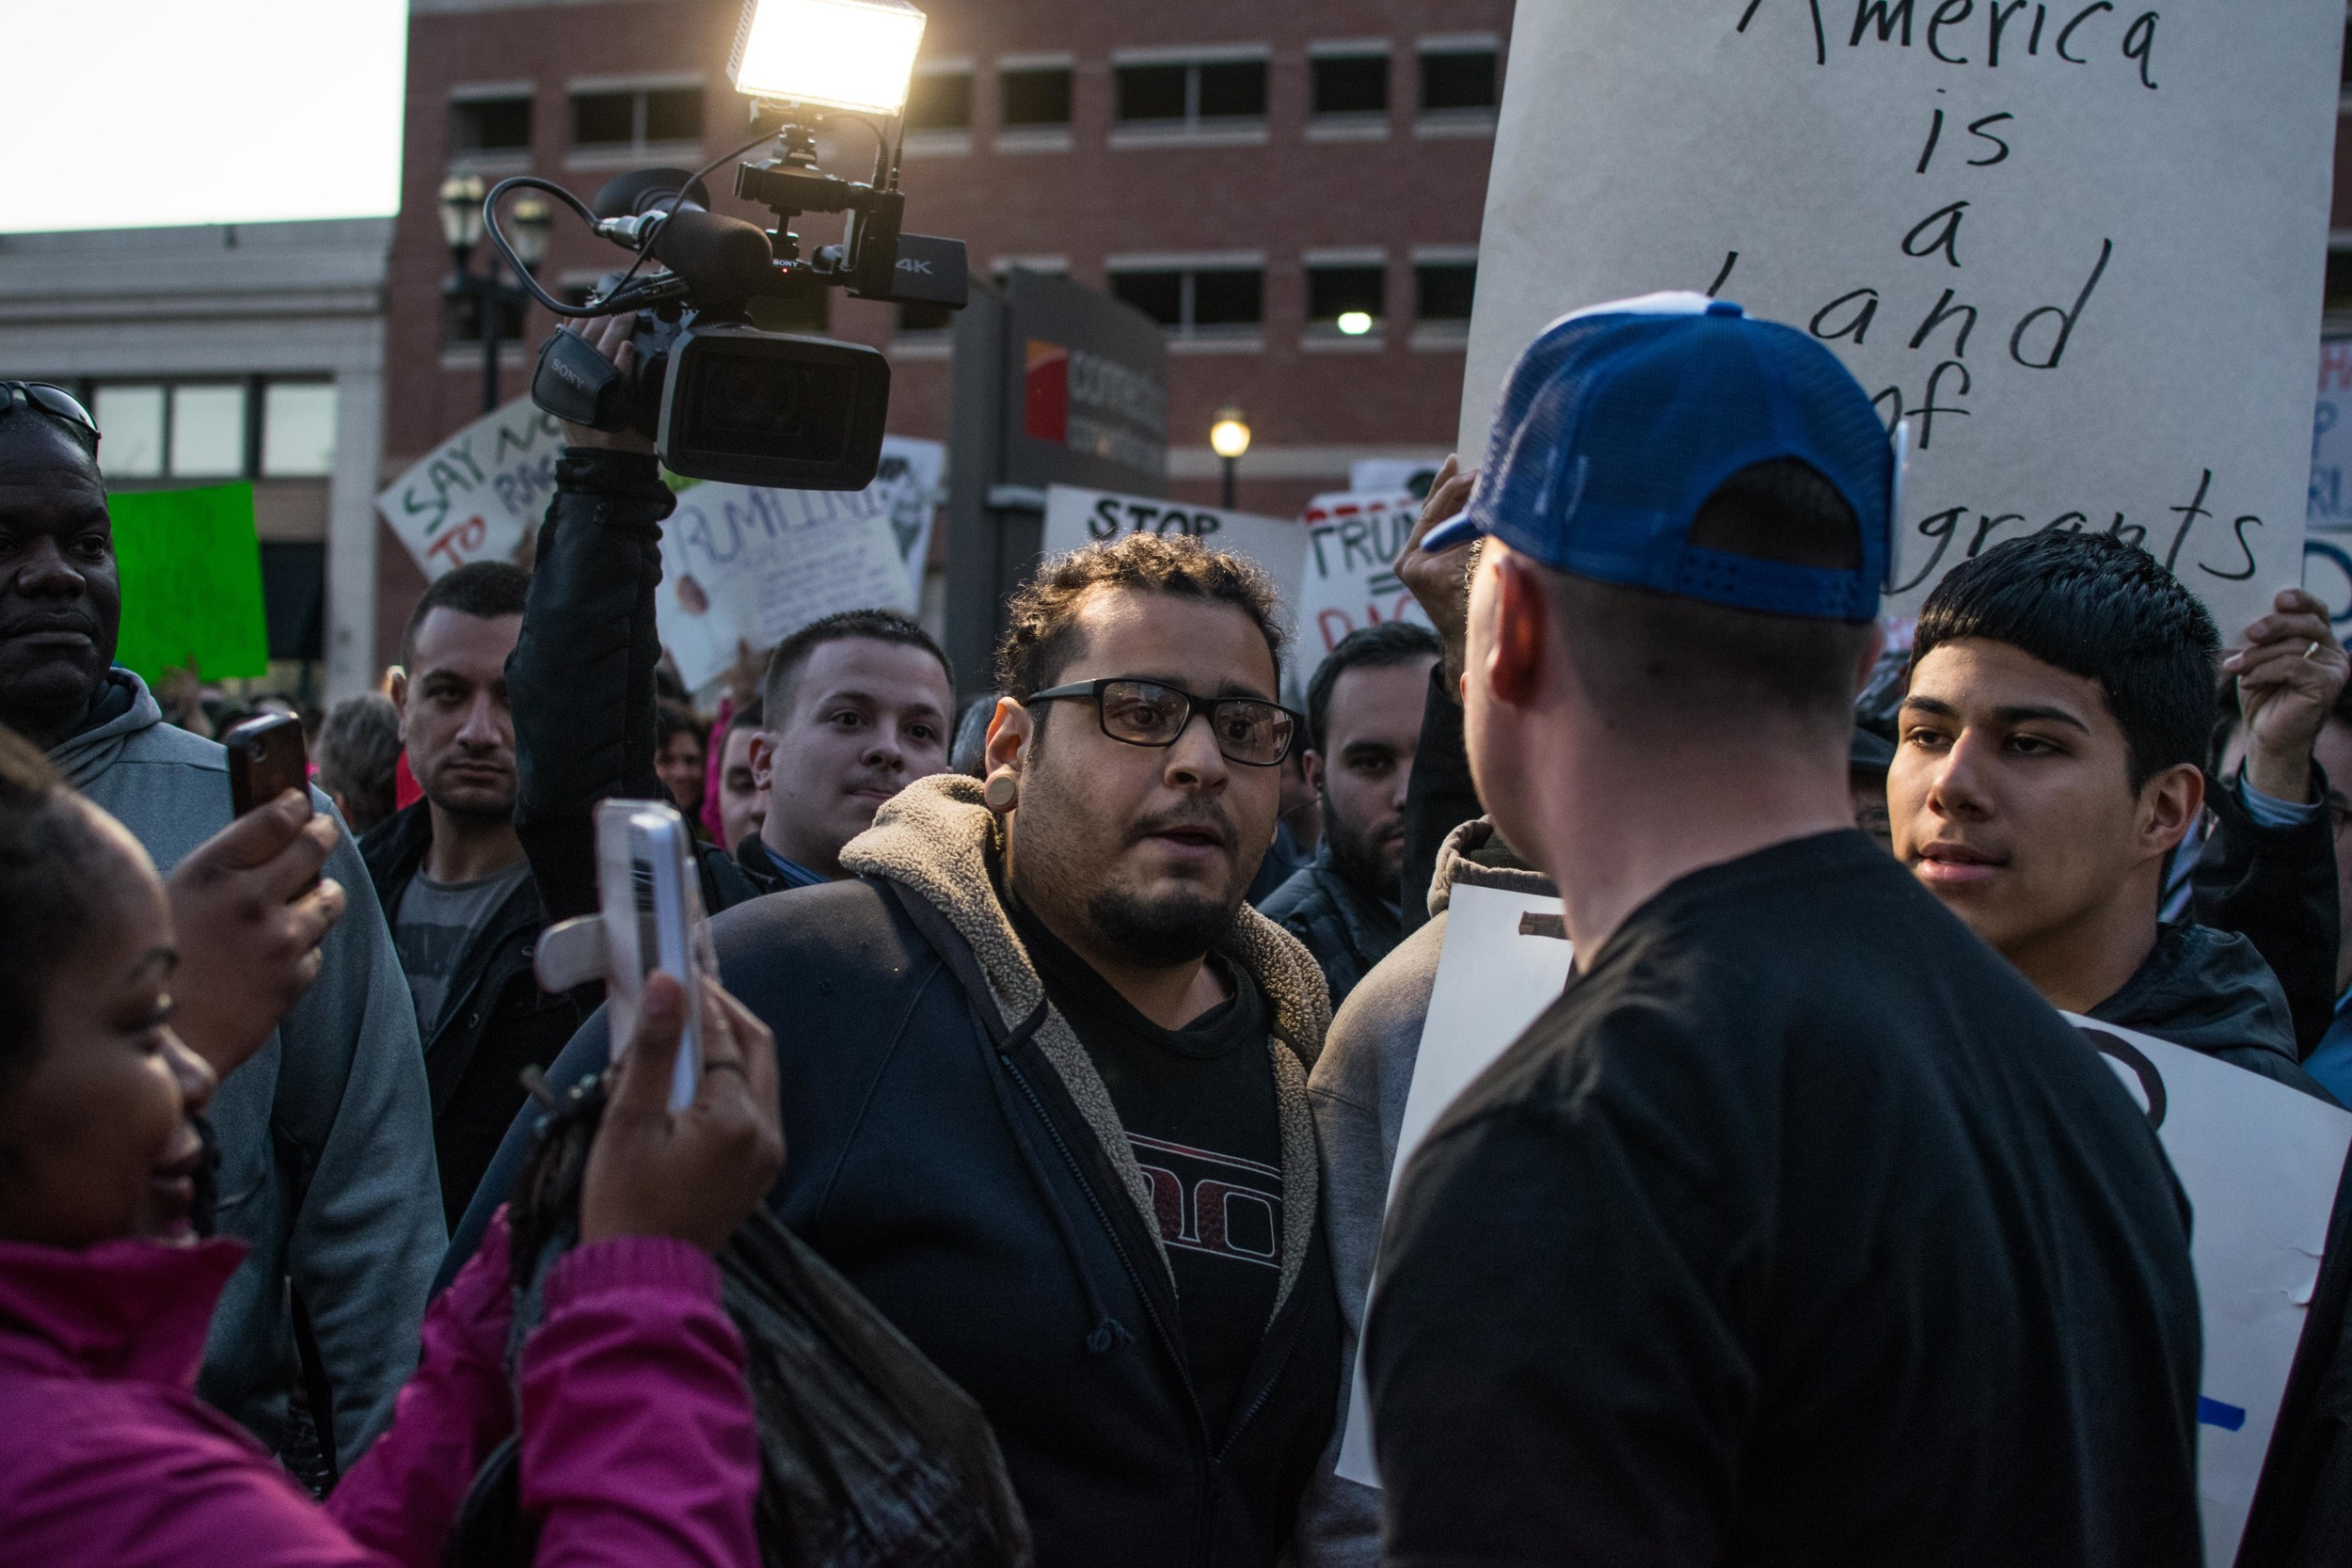 A Trump supporter (in the blue hat) confronts a group of protestors.